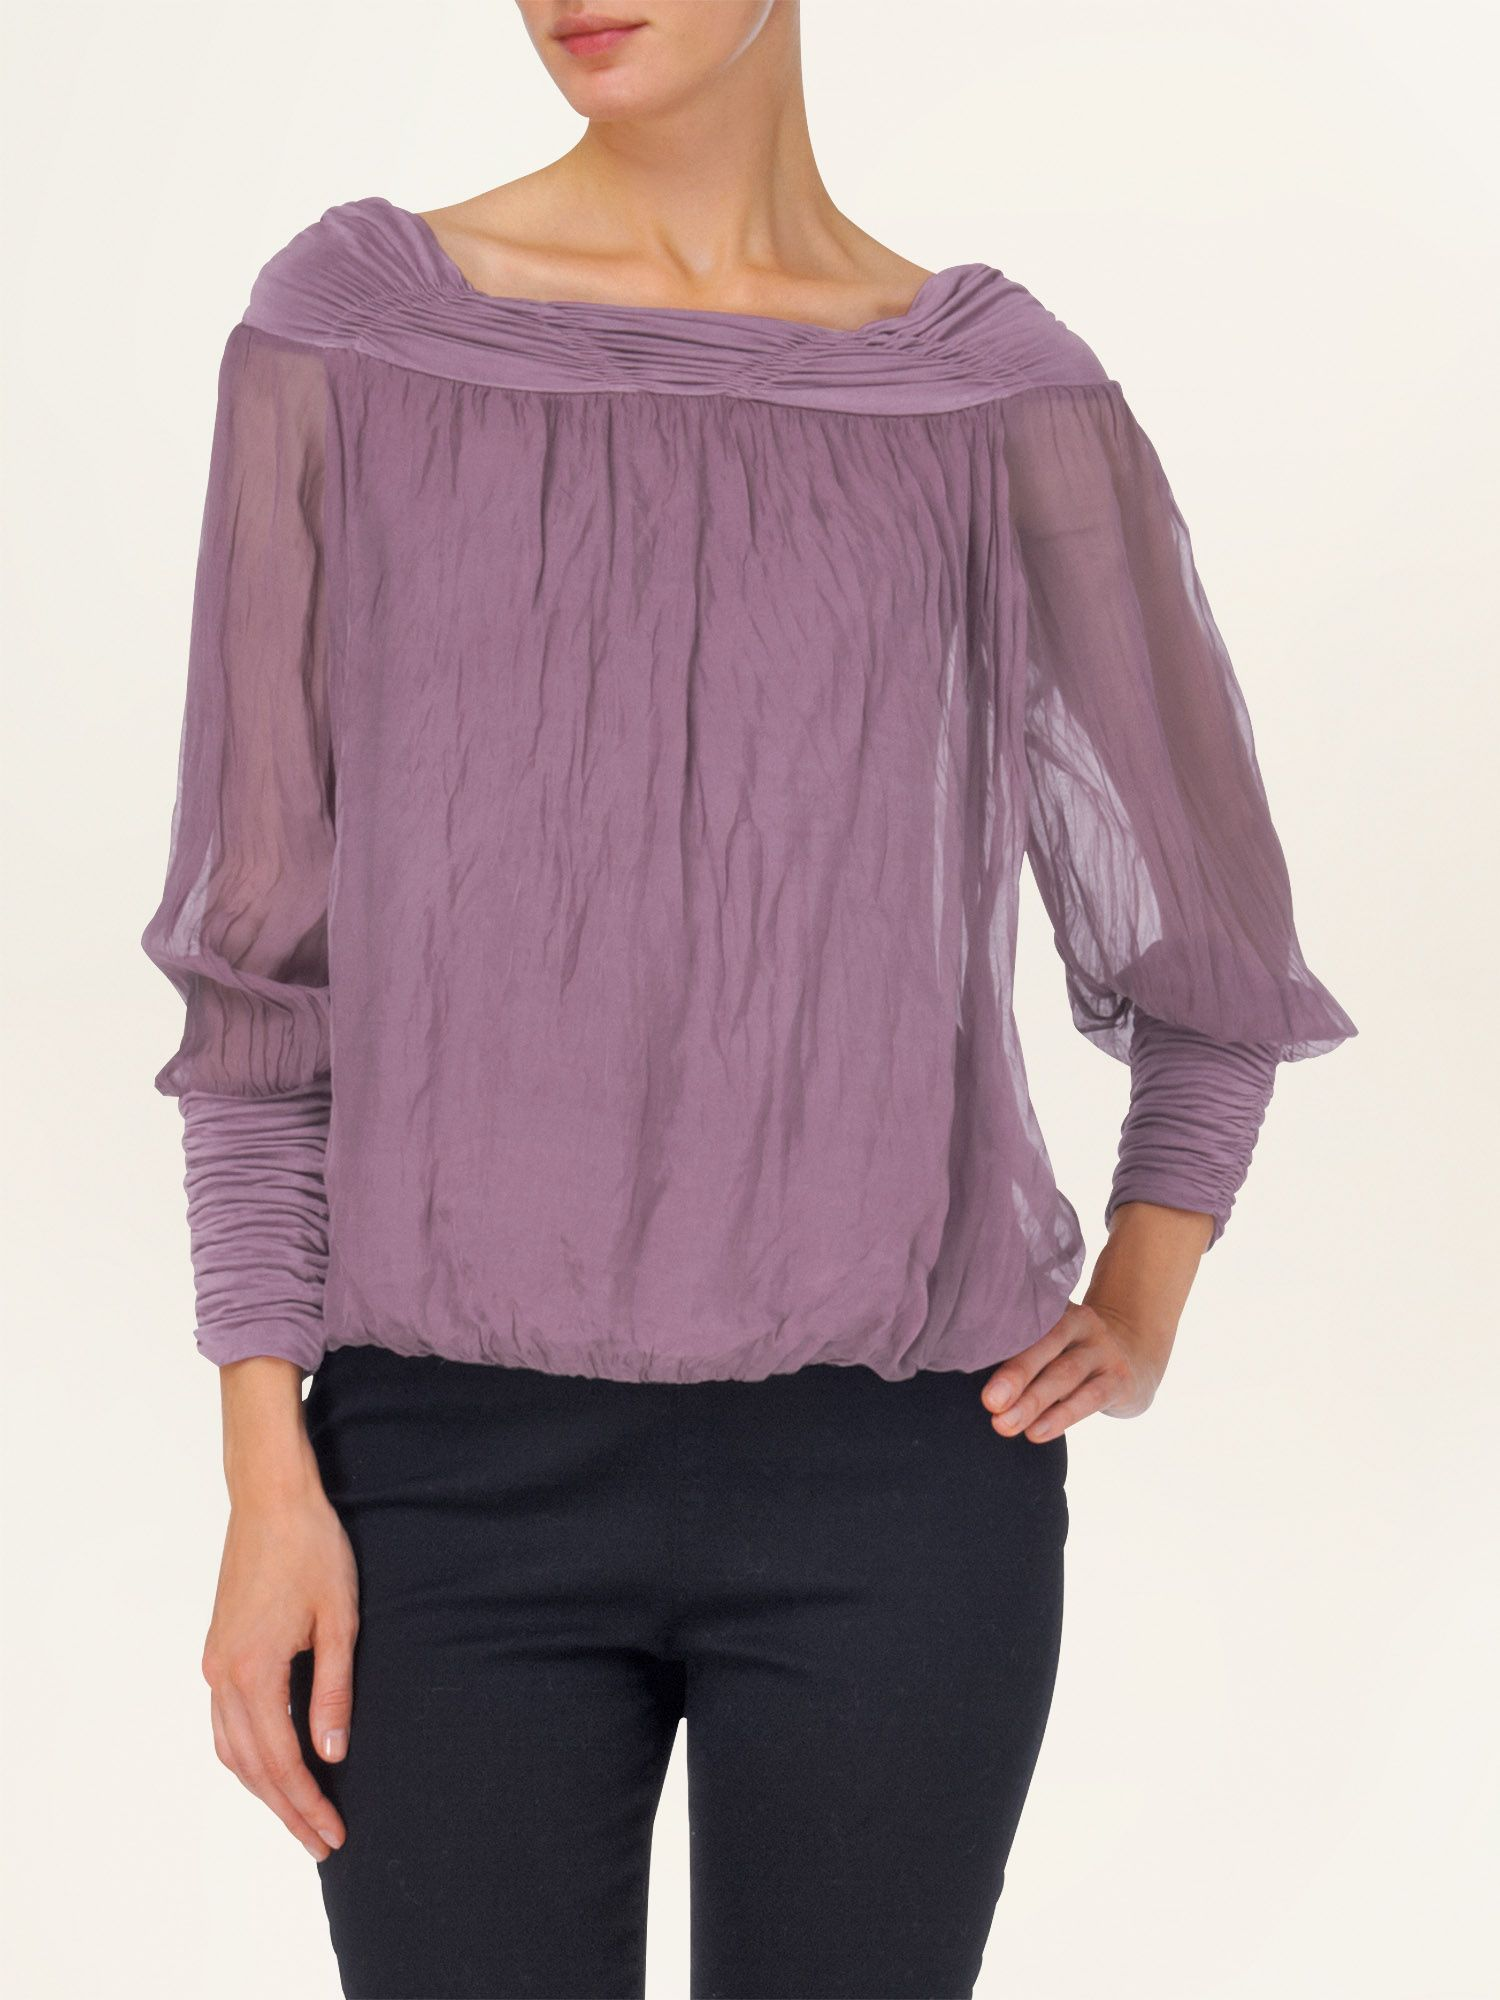 Gypsy silk blouse